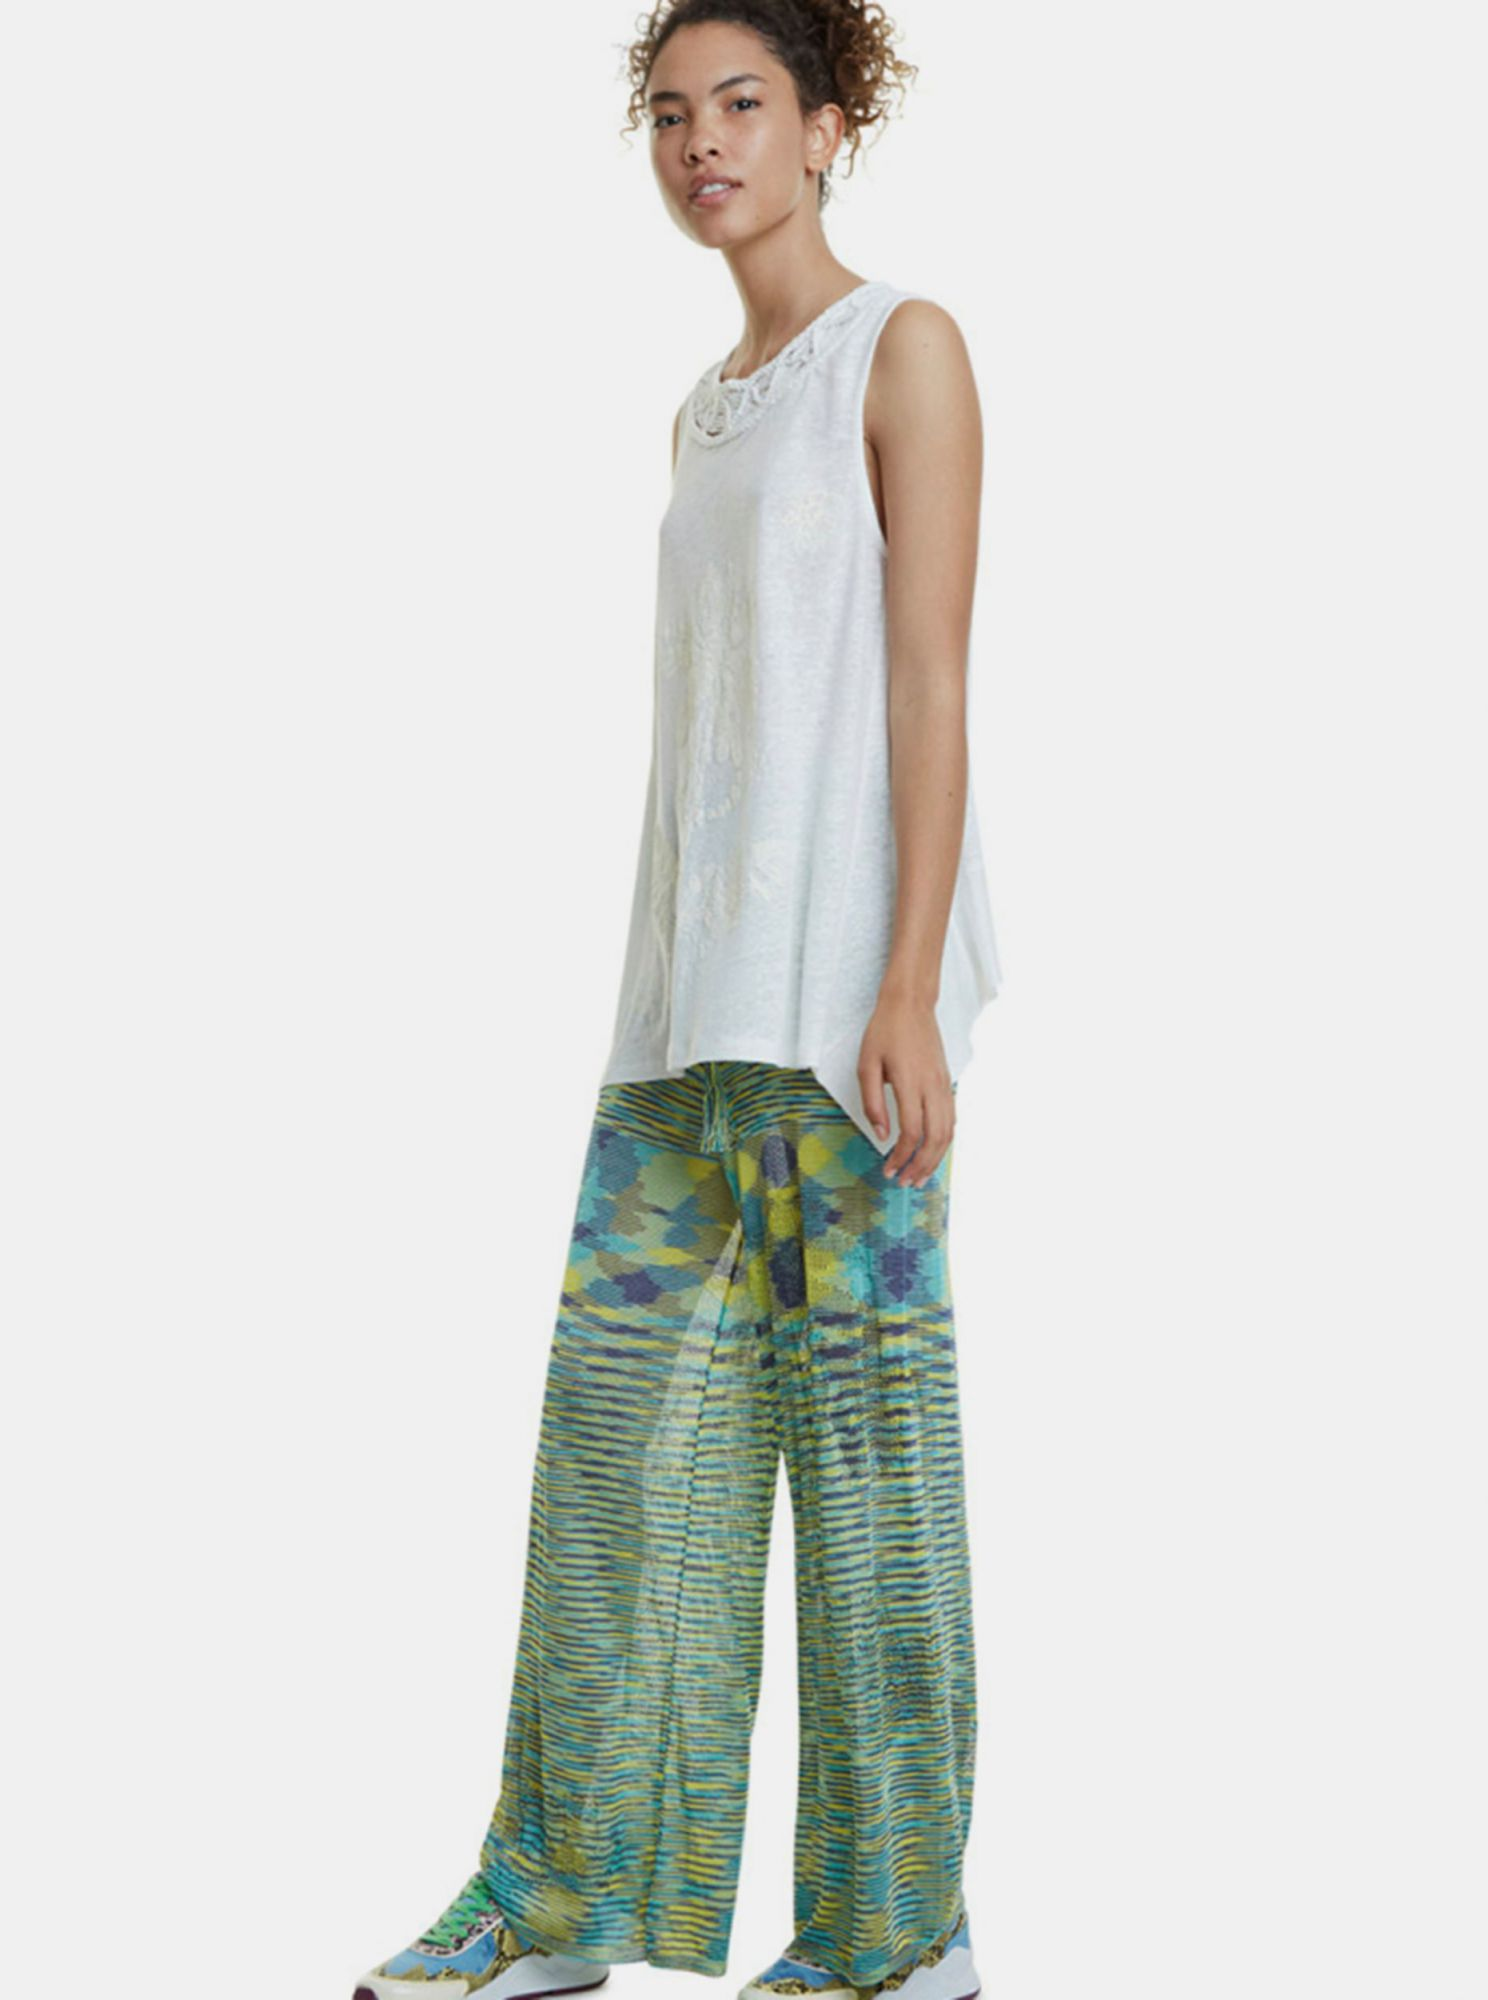 White tank top with Desigual flax